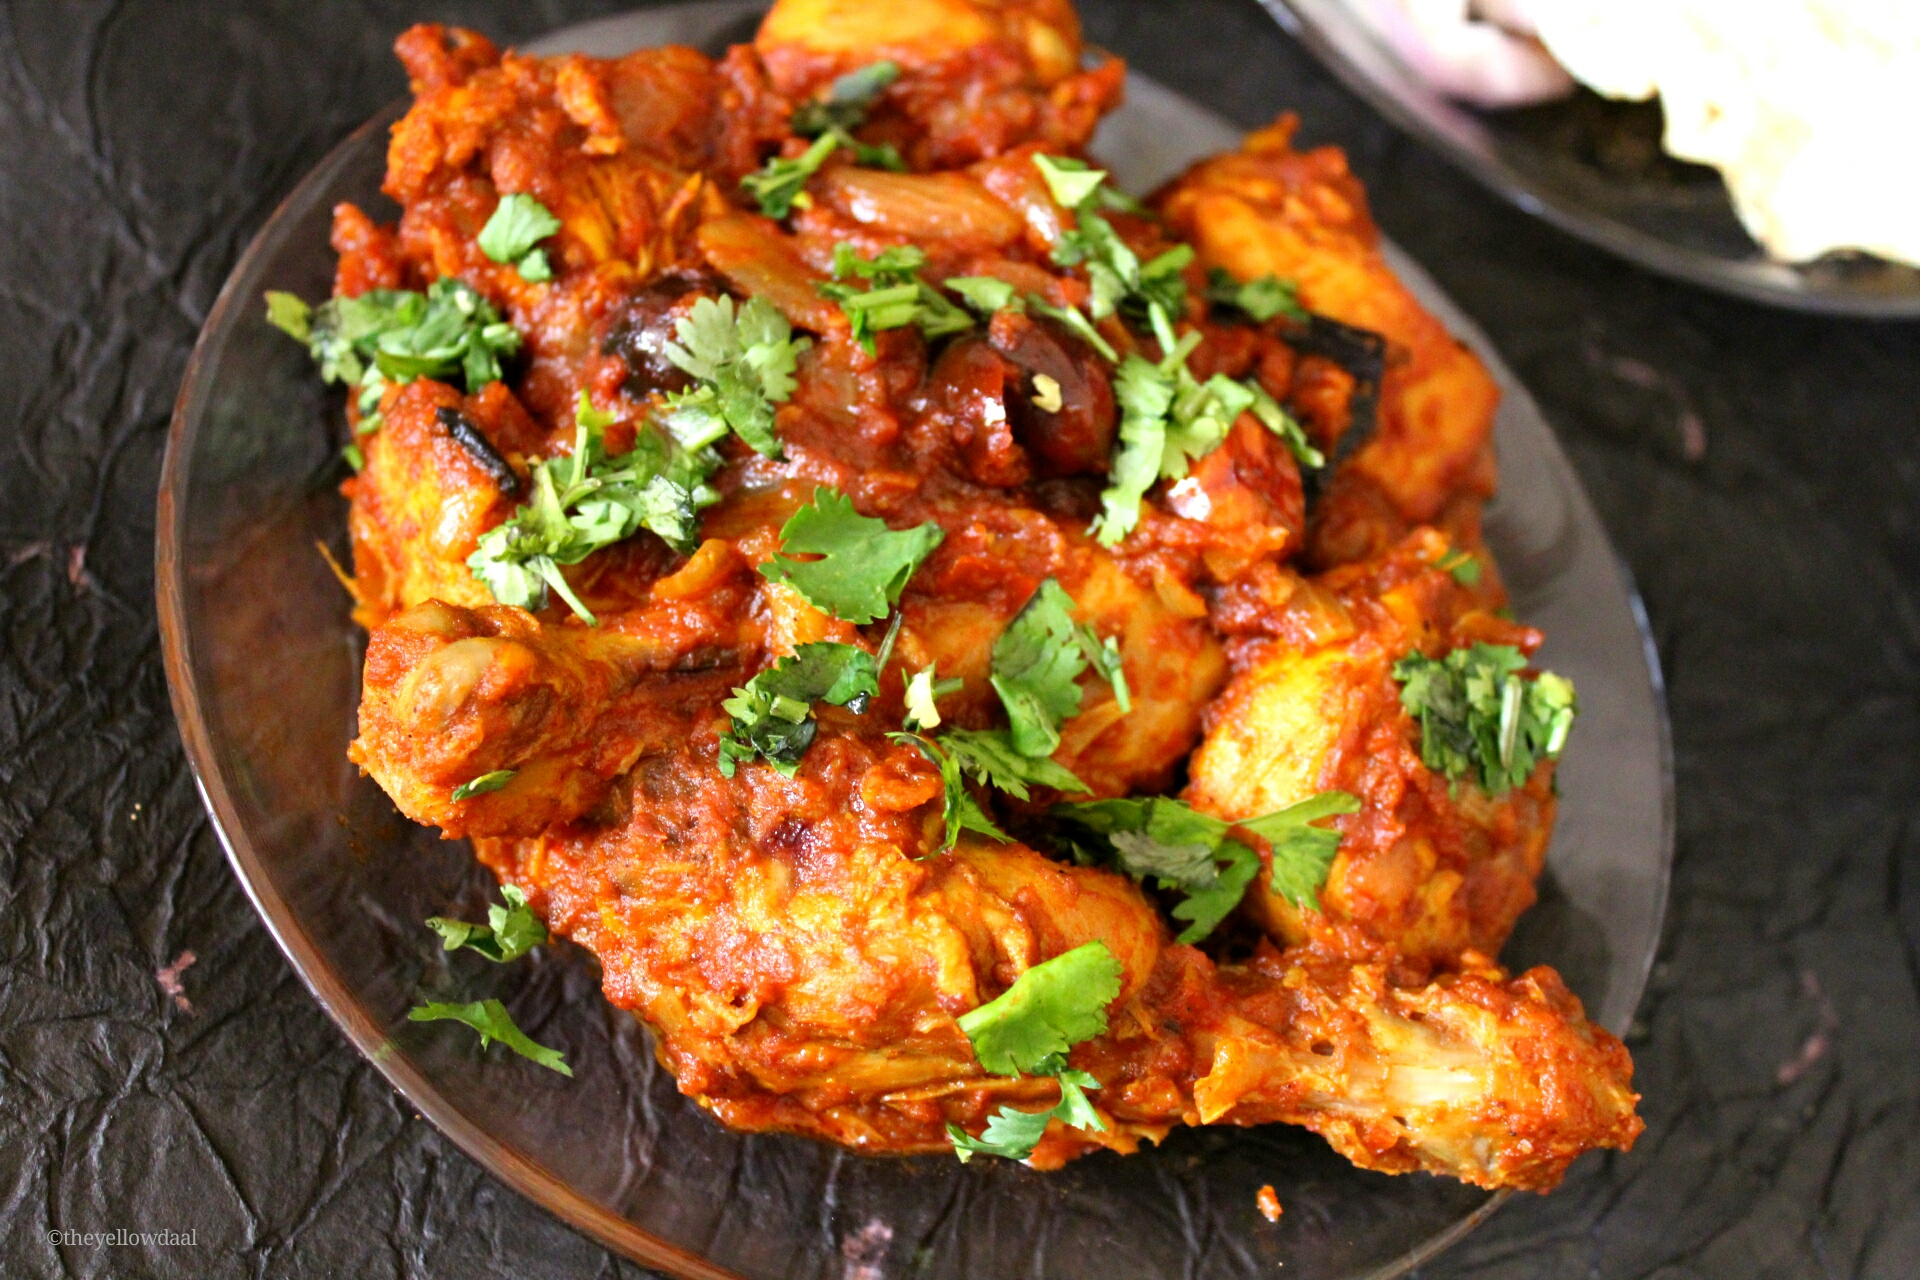 Dahi Murgh | Indian Spiced Chicken In Yougurt Sauce